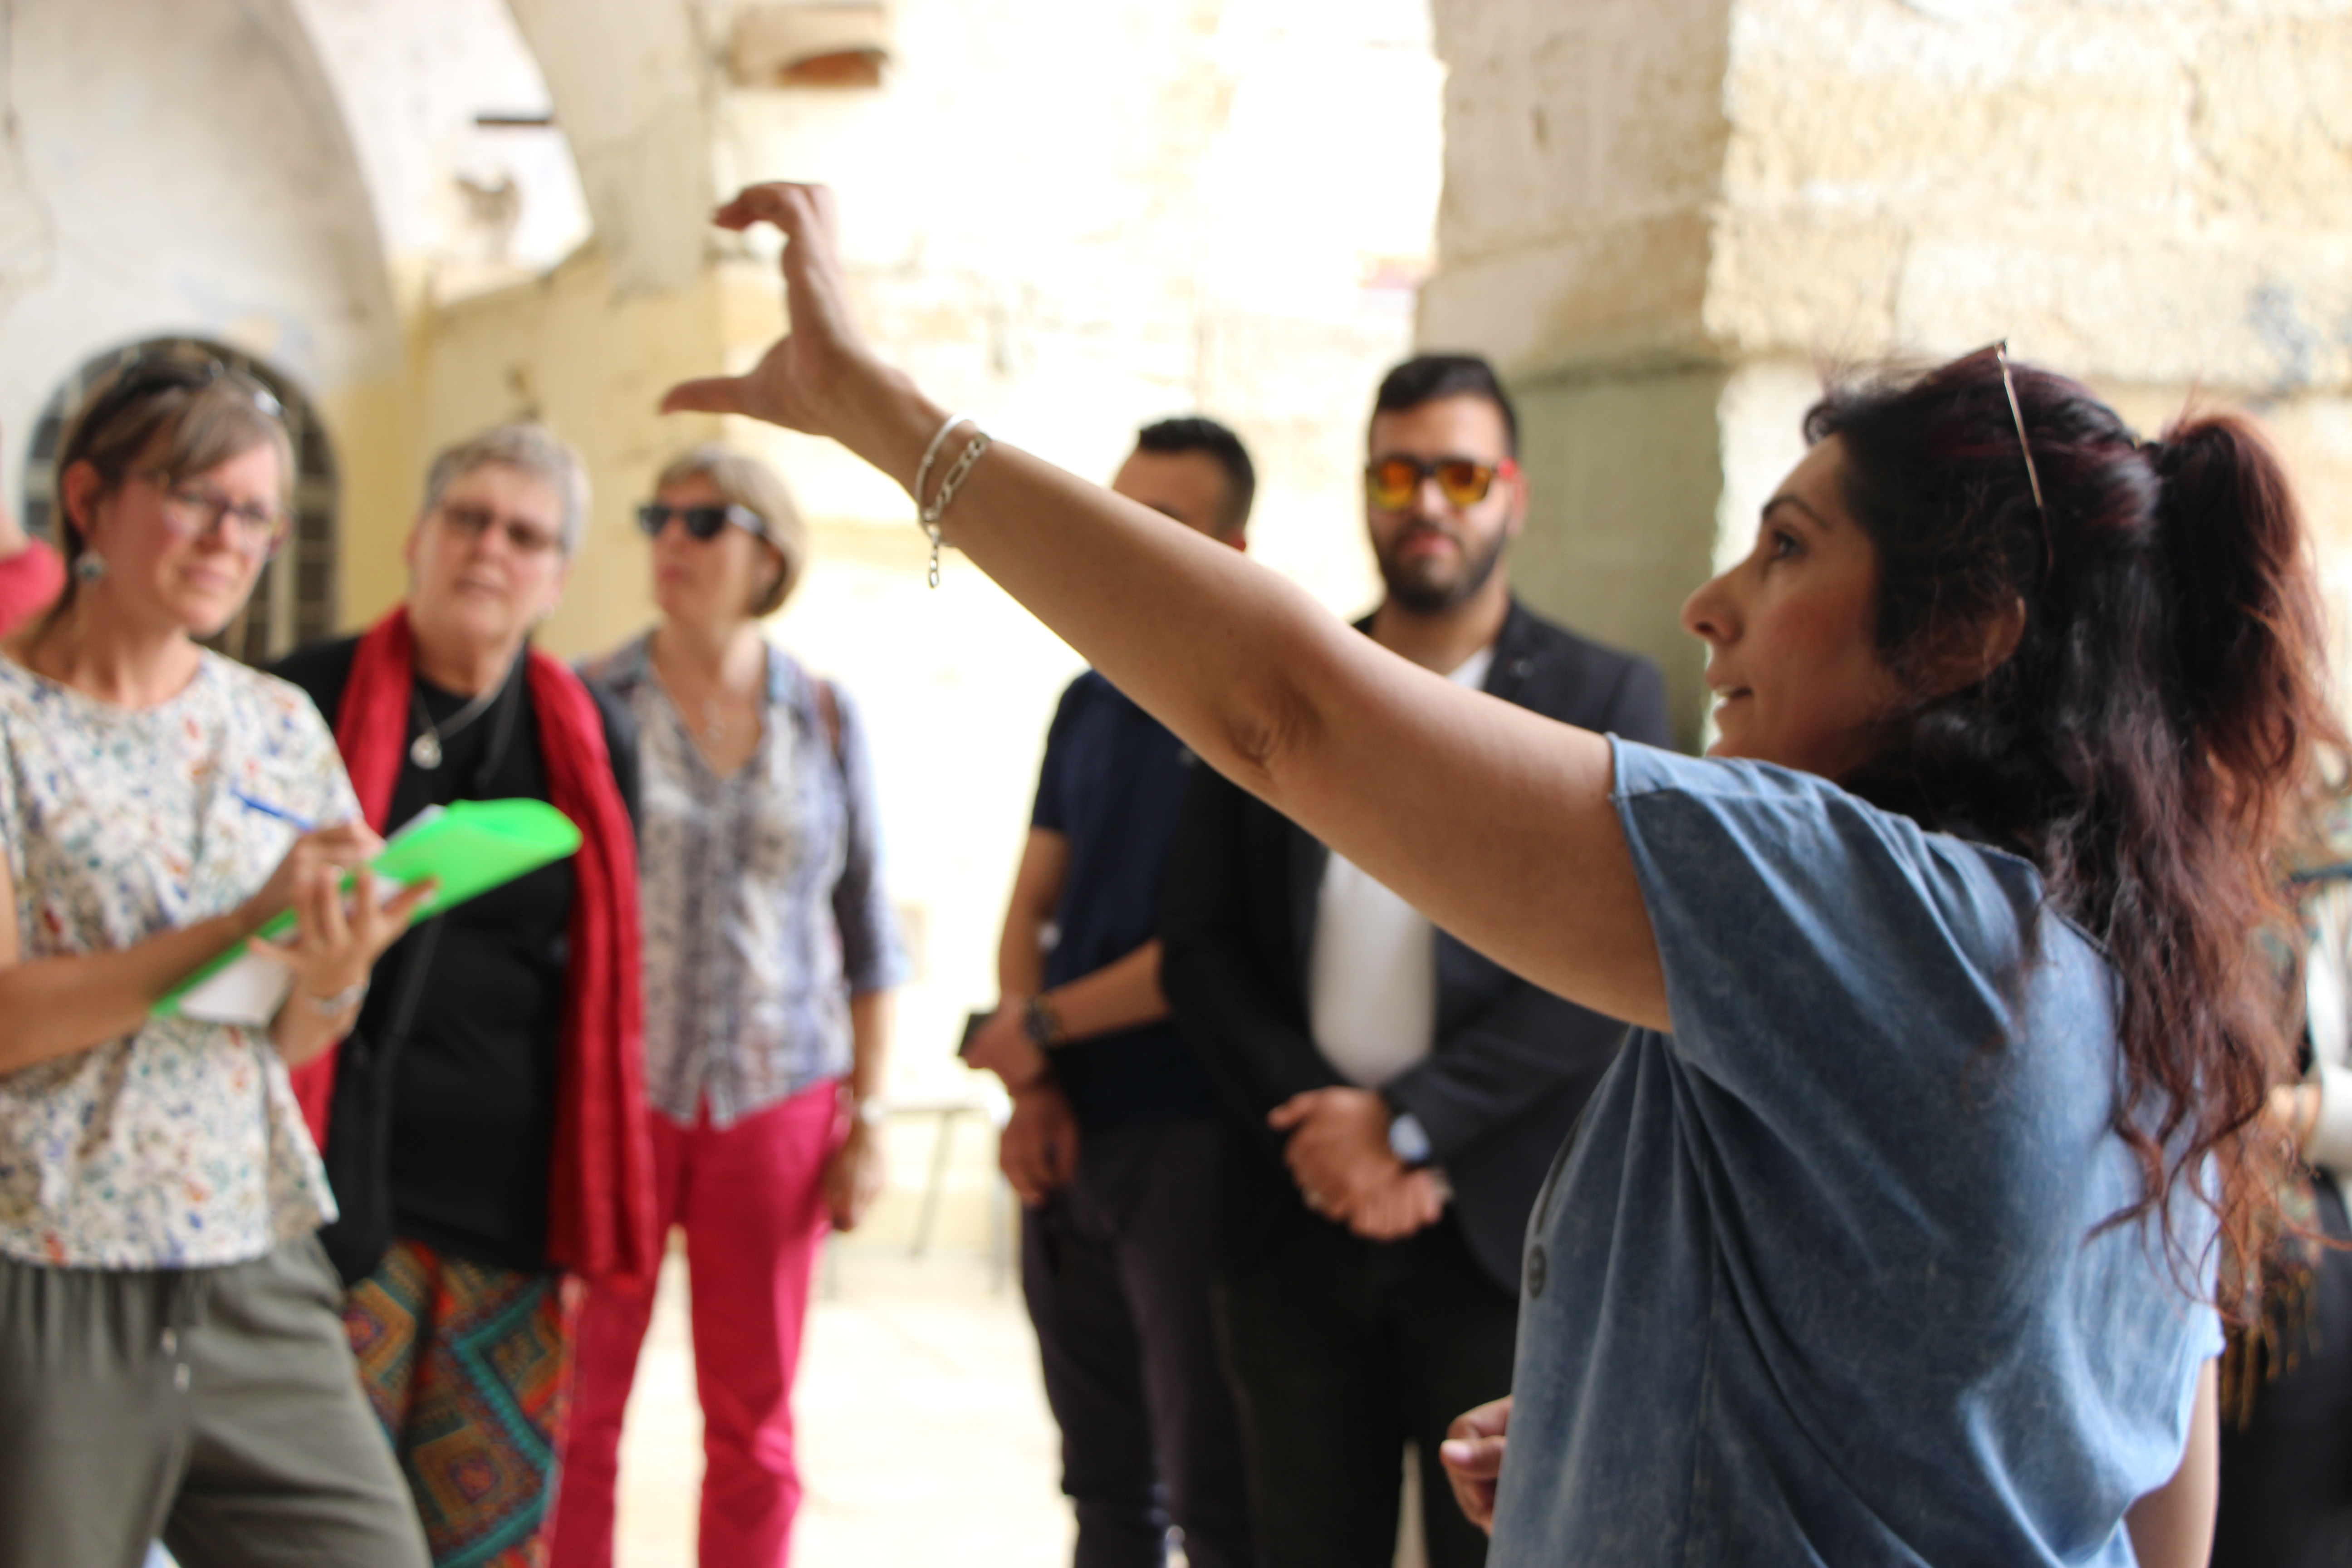 Tour Guides: Ambassadors of Culture and History